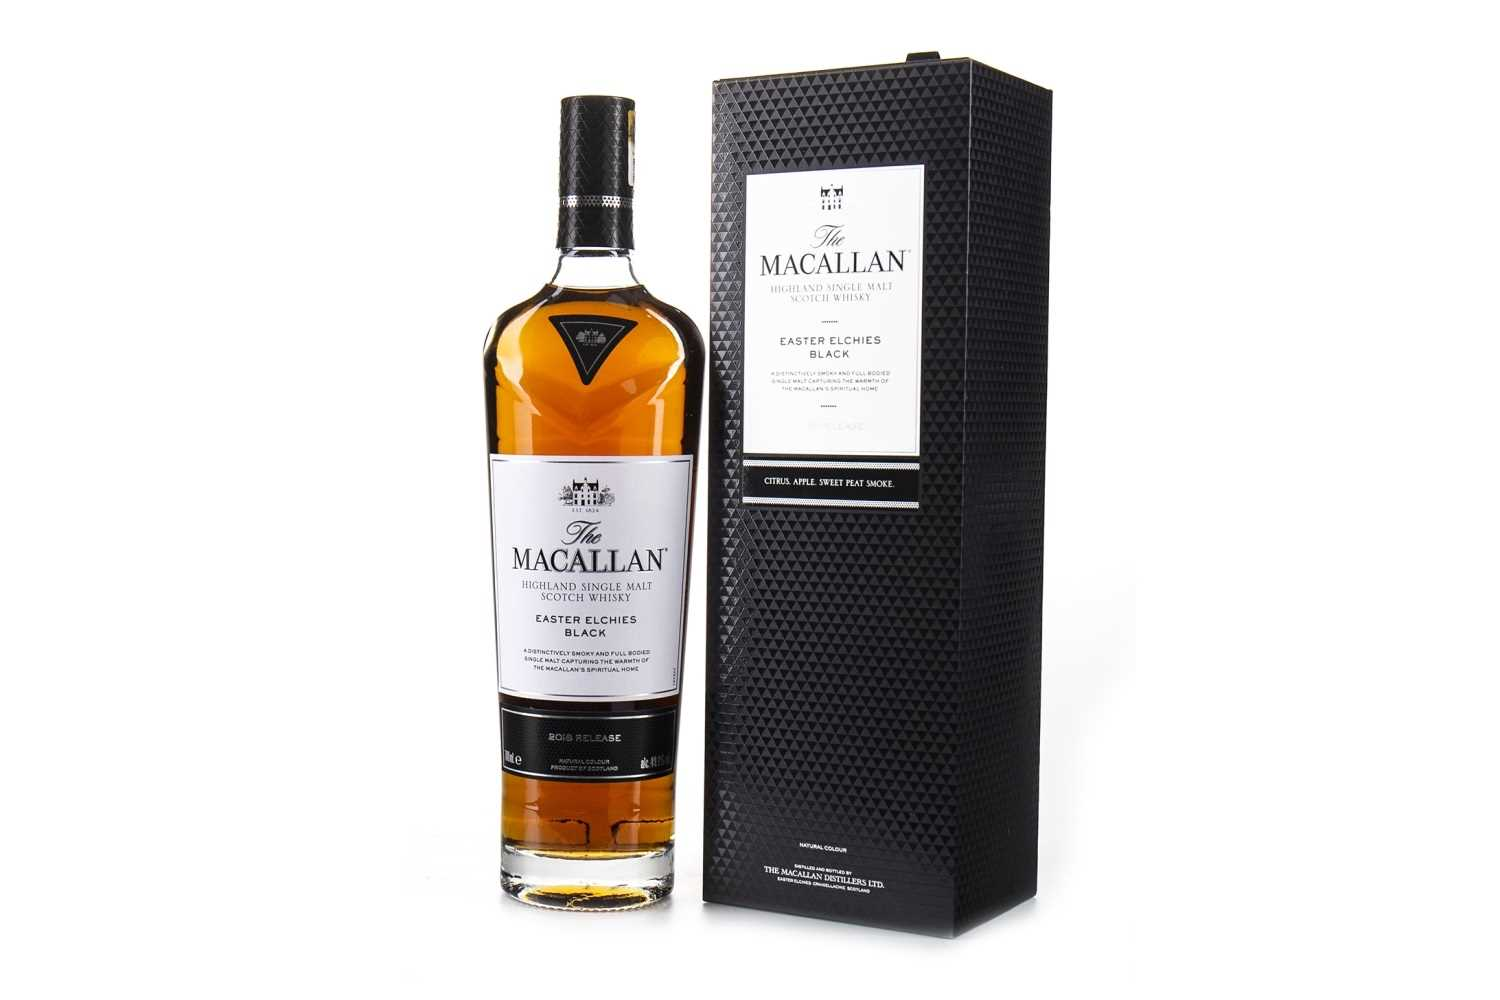 Lot 19-MACALLAN EASTER ELCHIES BLACK - 2018 RELEASE